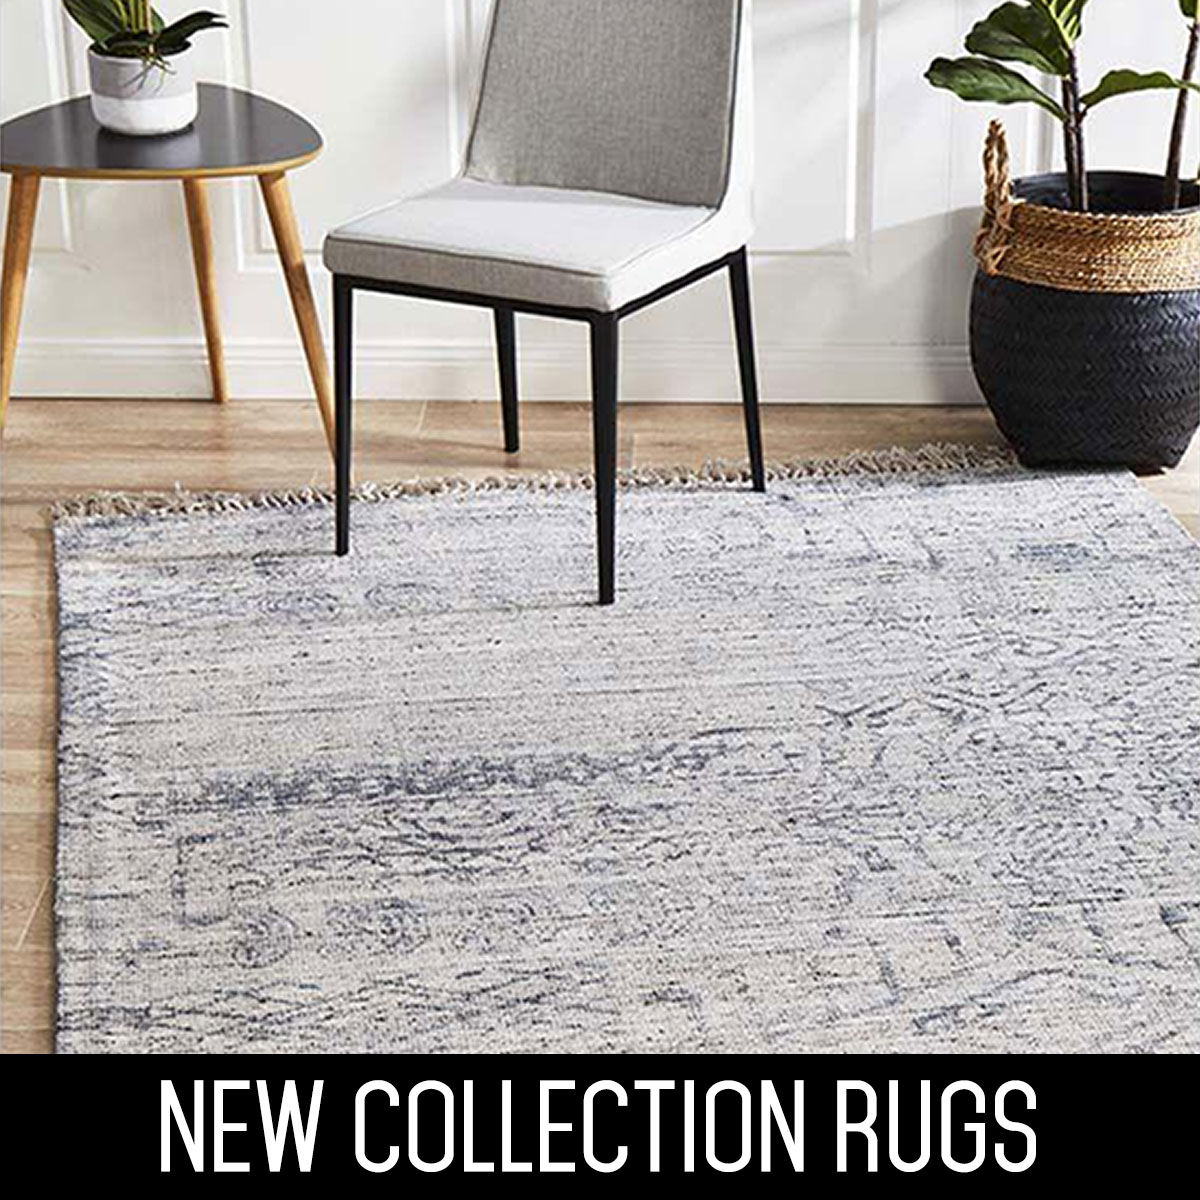 New Collection Rugs